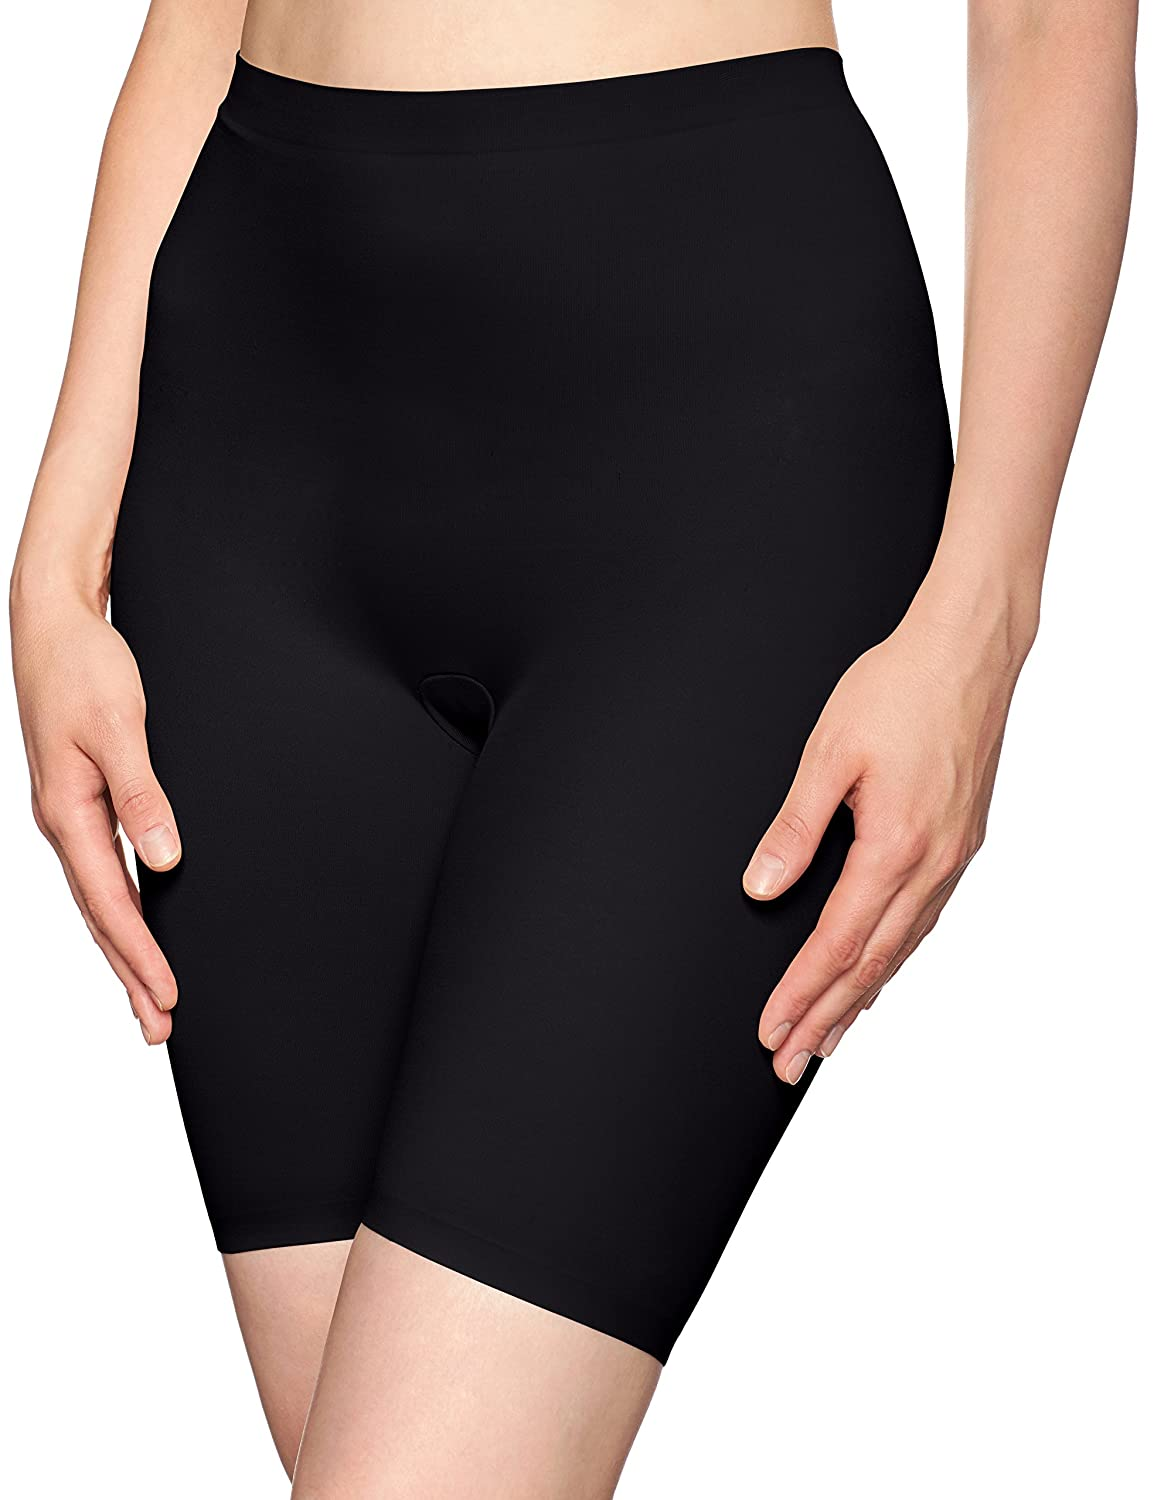 92e9363664 Self Expressions Smooth Tec Thigh Slimmer (SE0035) at Amazon Women s  Clothing store